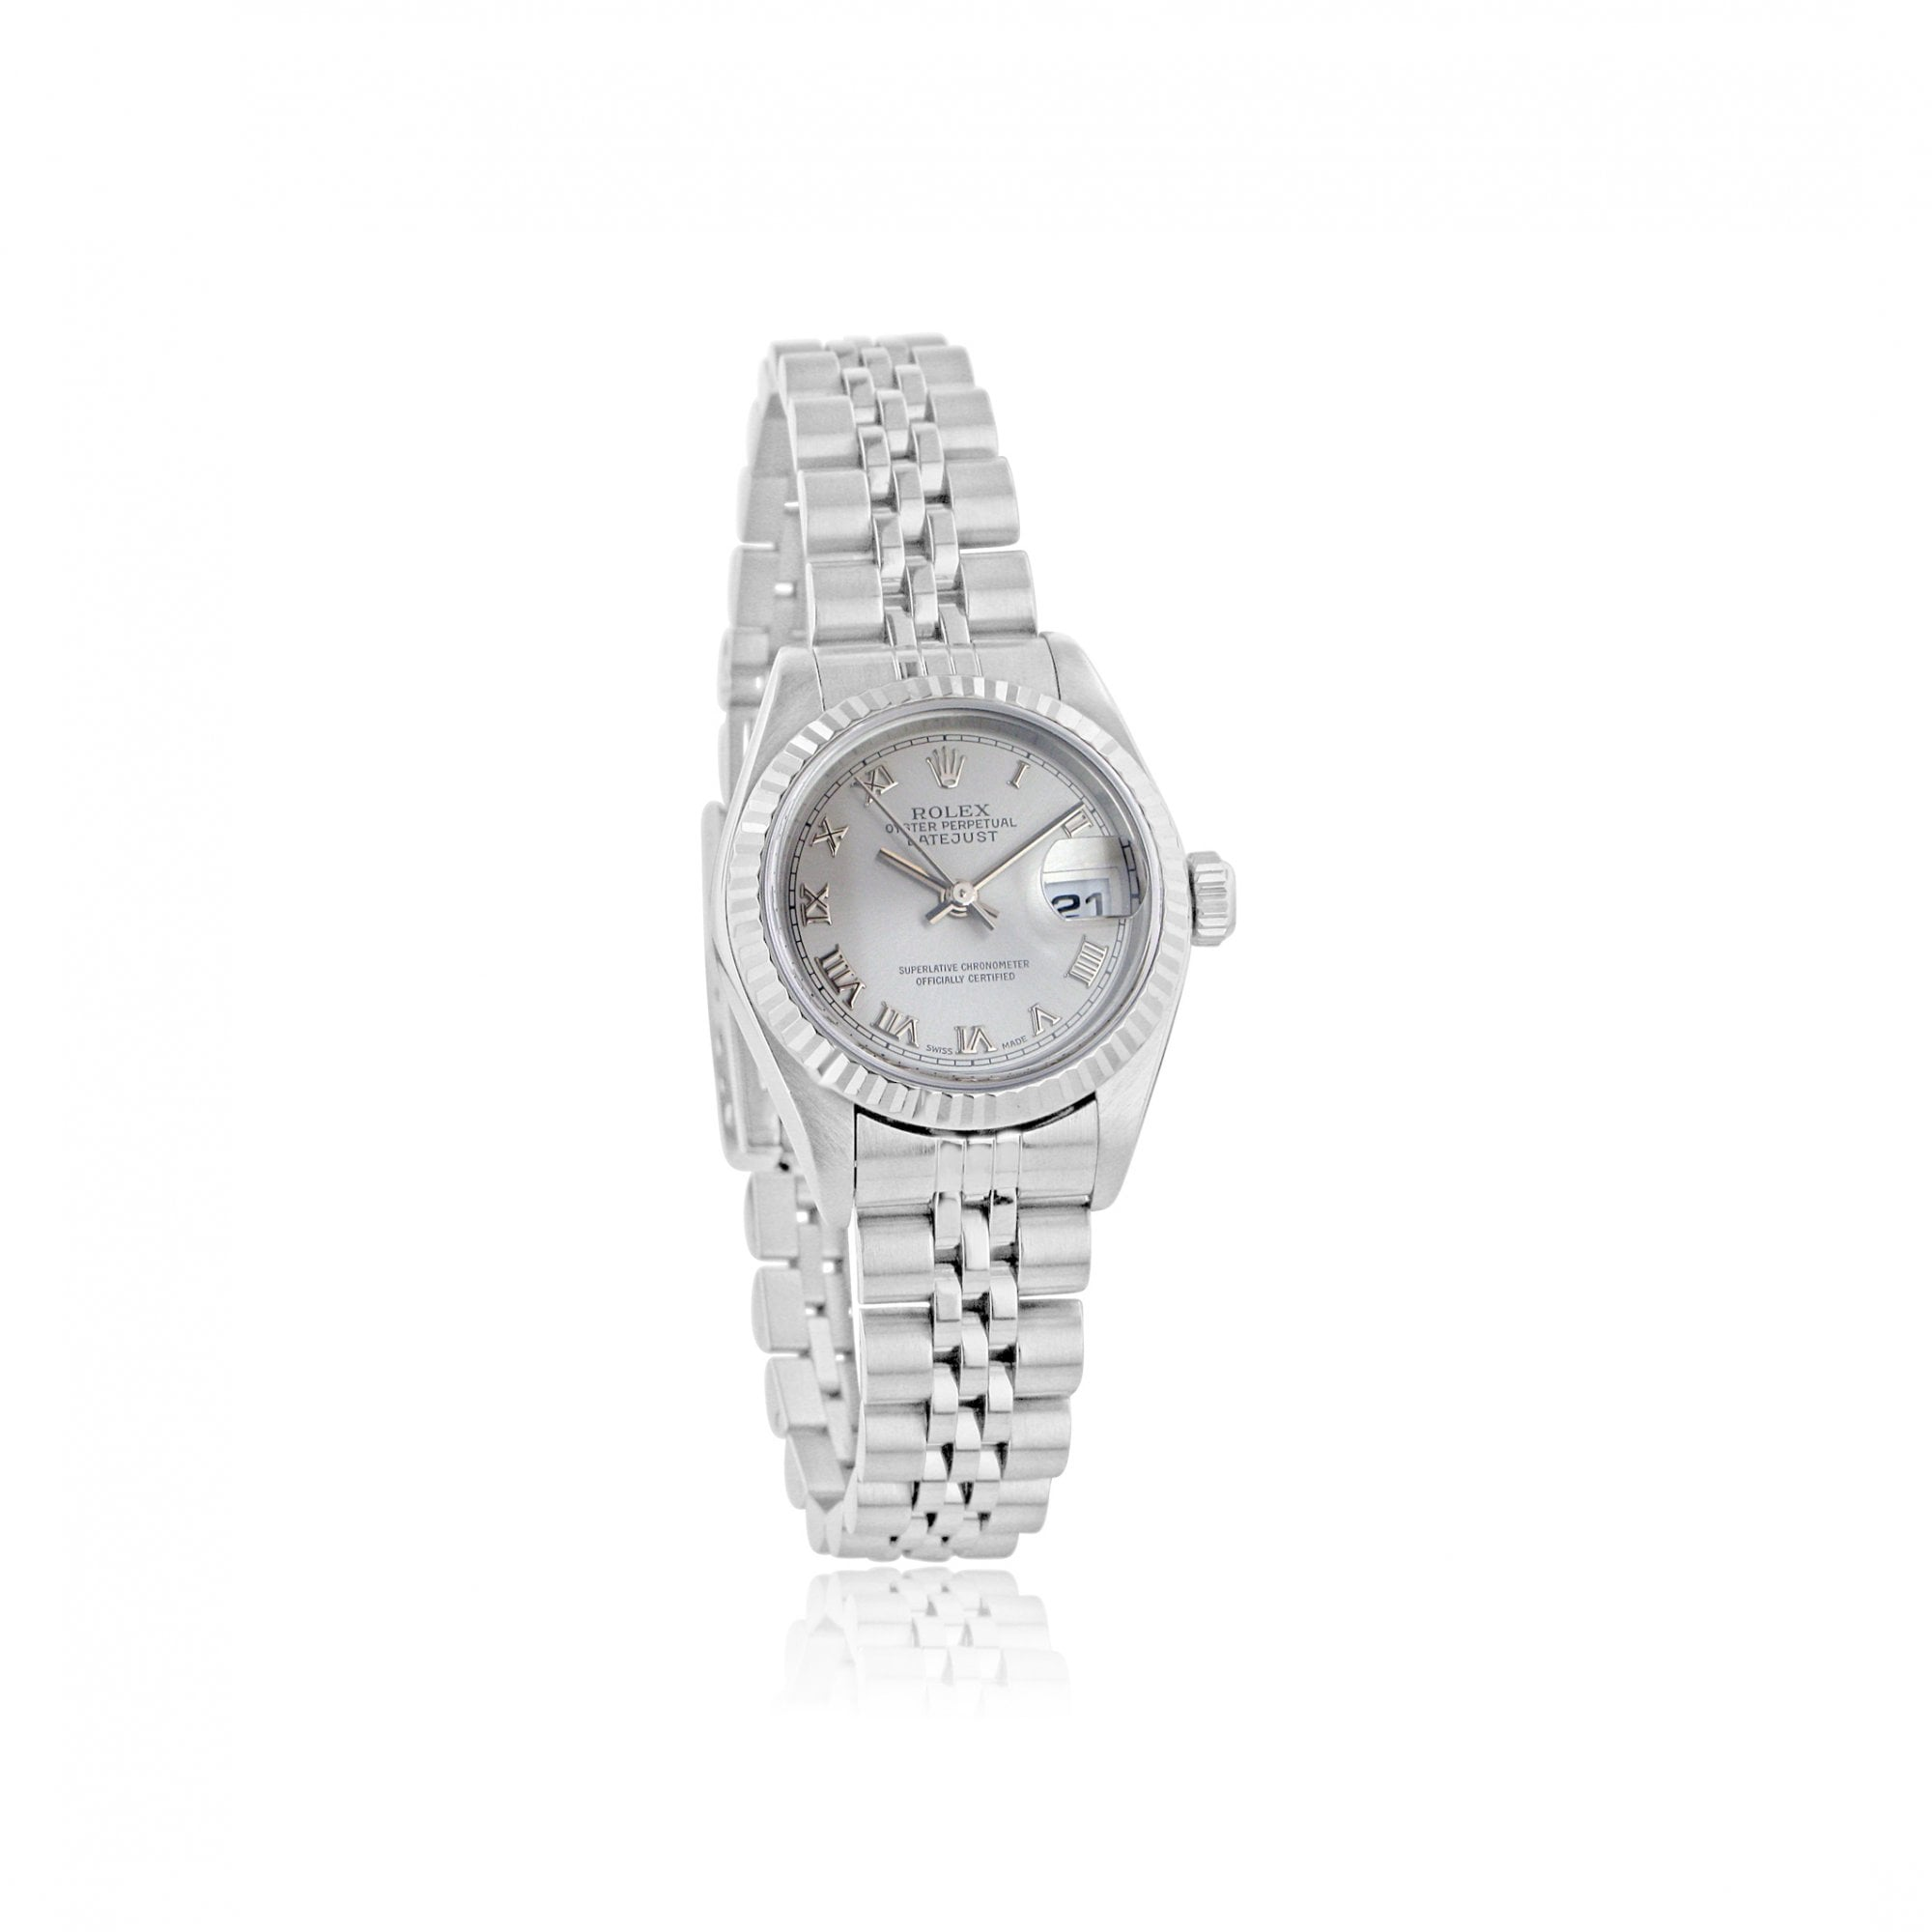 e9c50fa8dfa8f Ladies Steel And 18ct White Gold Rolex Datejust Watch With Silver Dial 79174